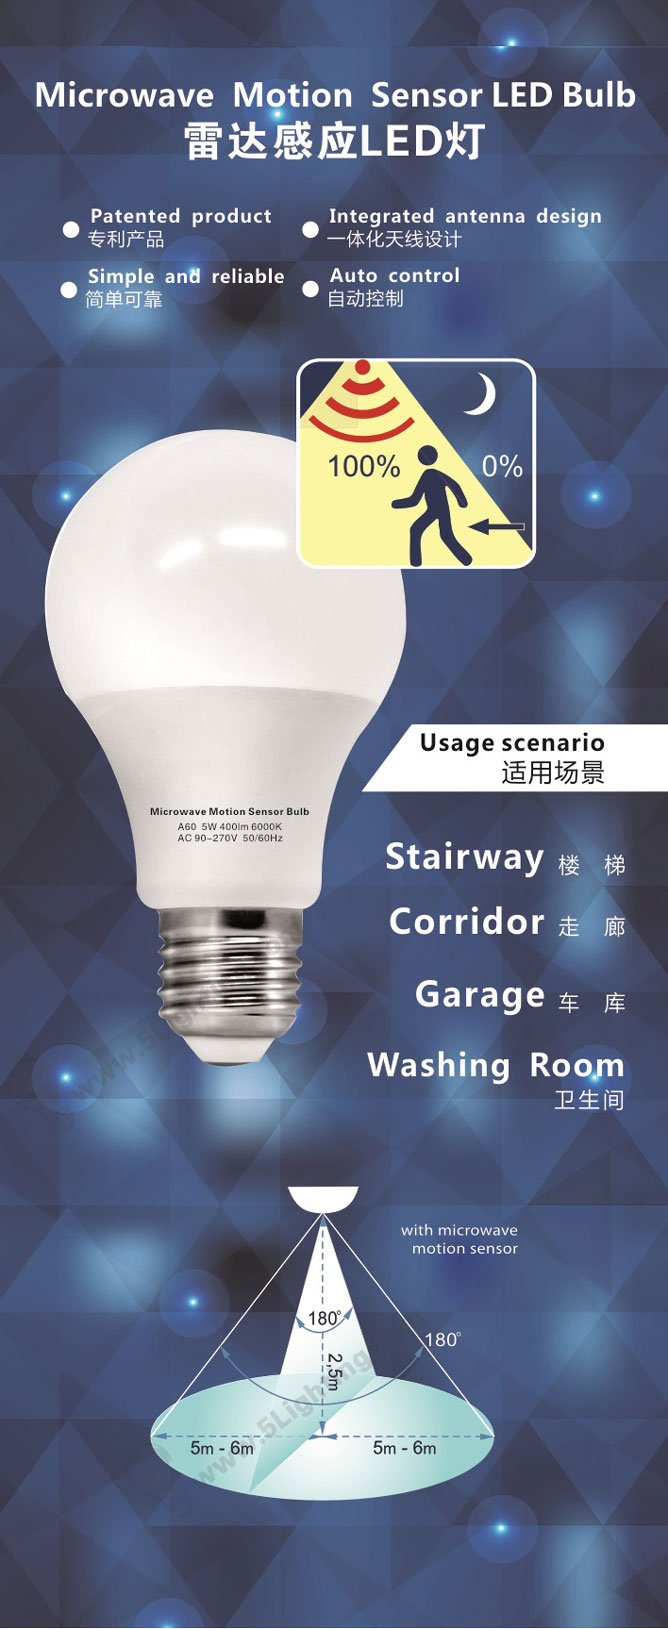 Radar Motion Sensor Bulbs, Radar Motion Sensor Light Bulbs